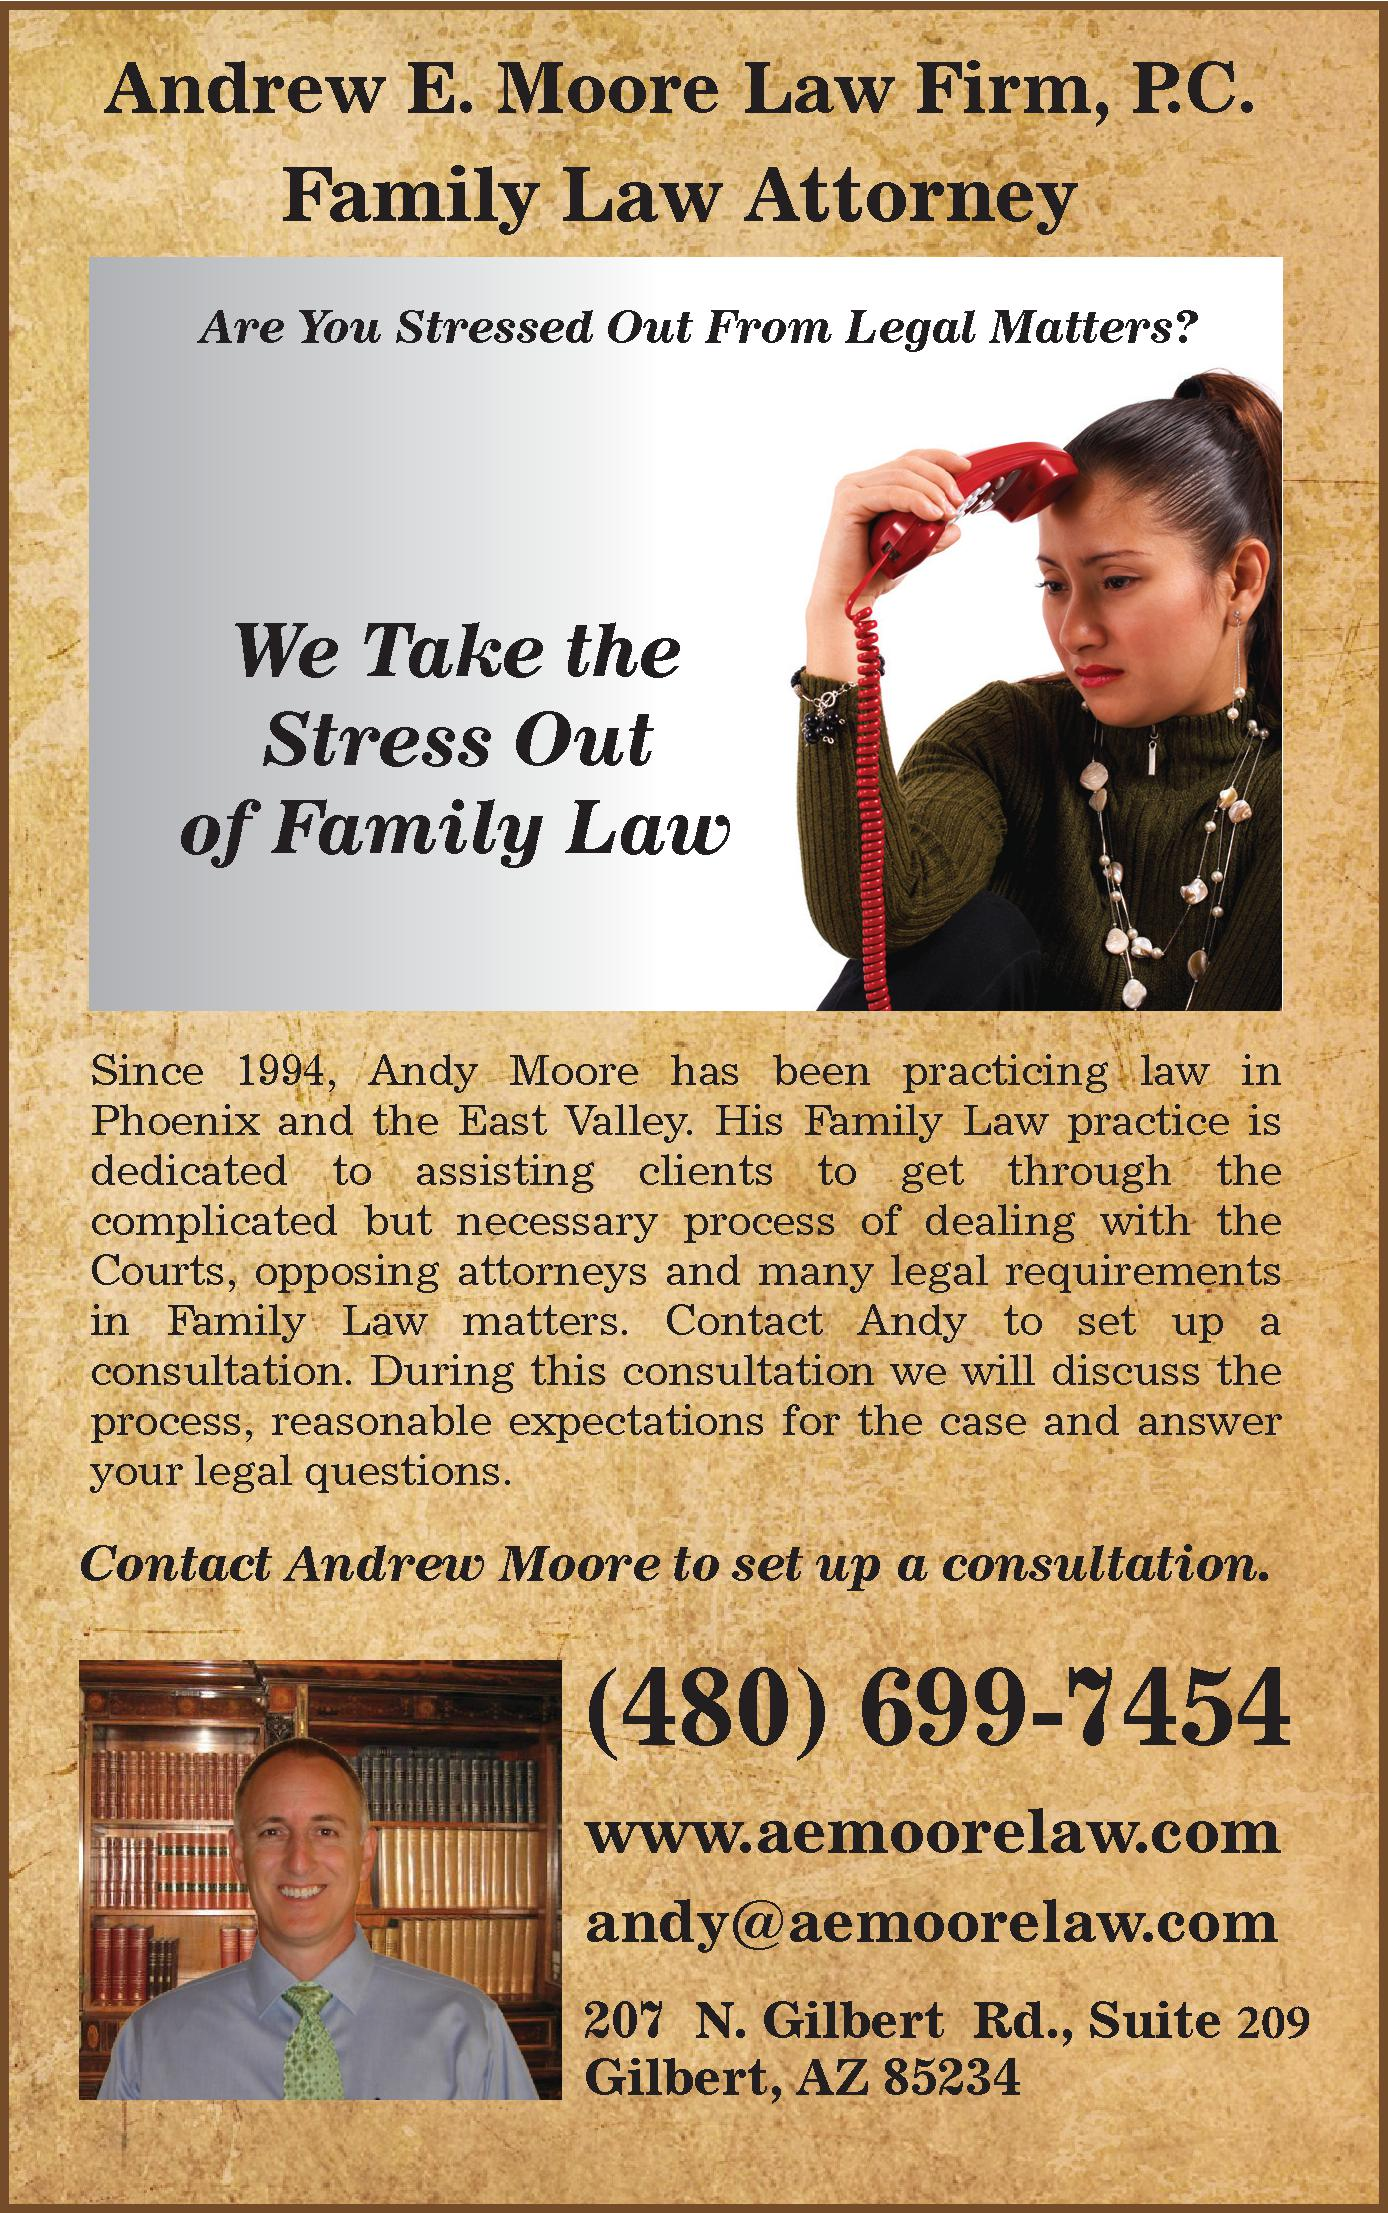 Andrew E. Moore Law Firm, P.C.